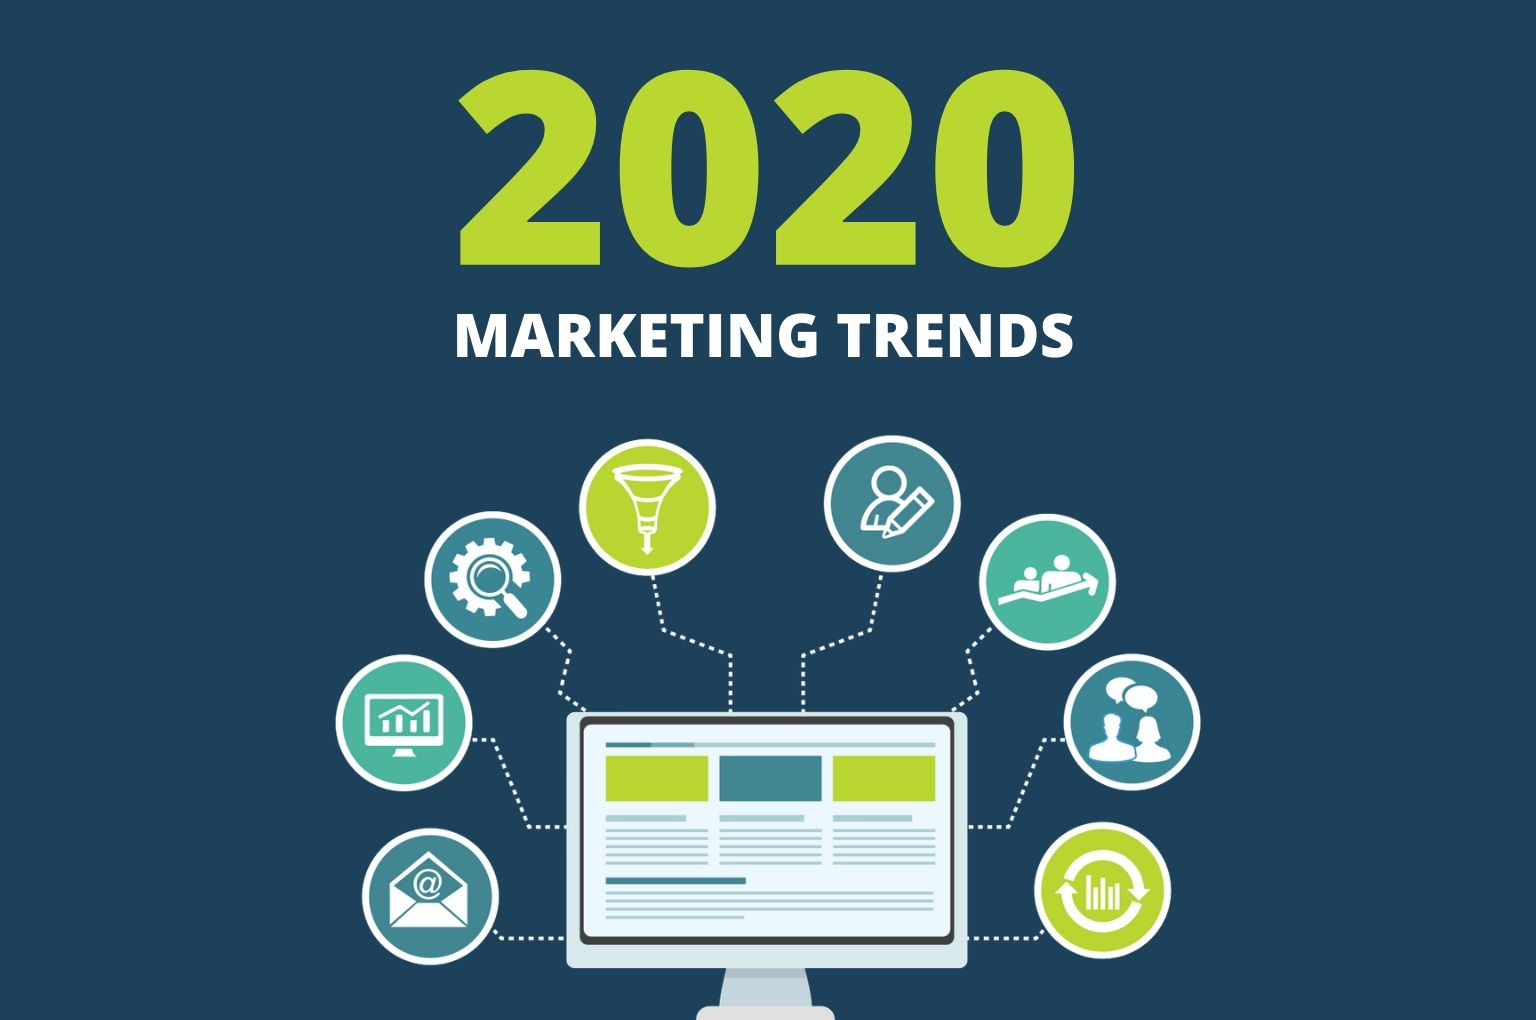 6 Marketing Trend 2020 che non possiamo ignorare